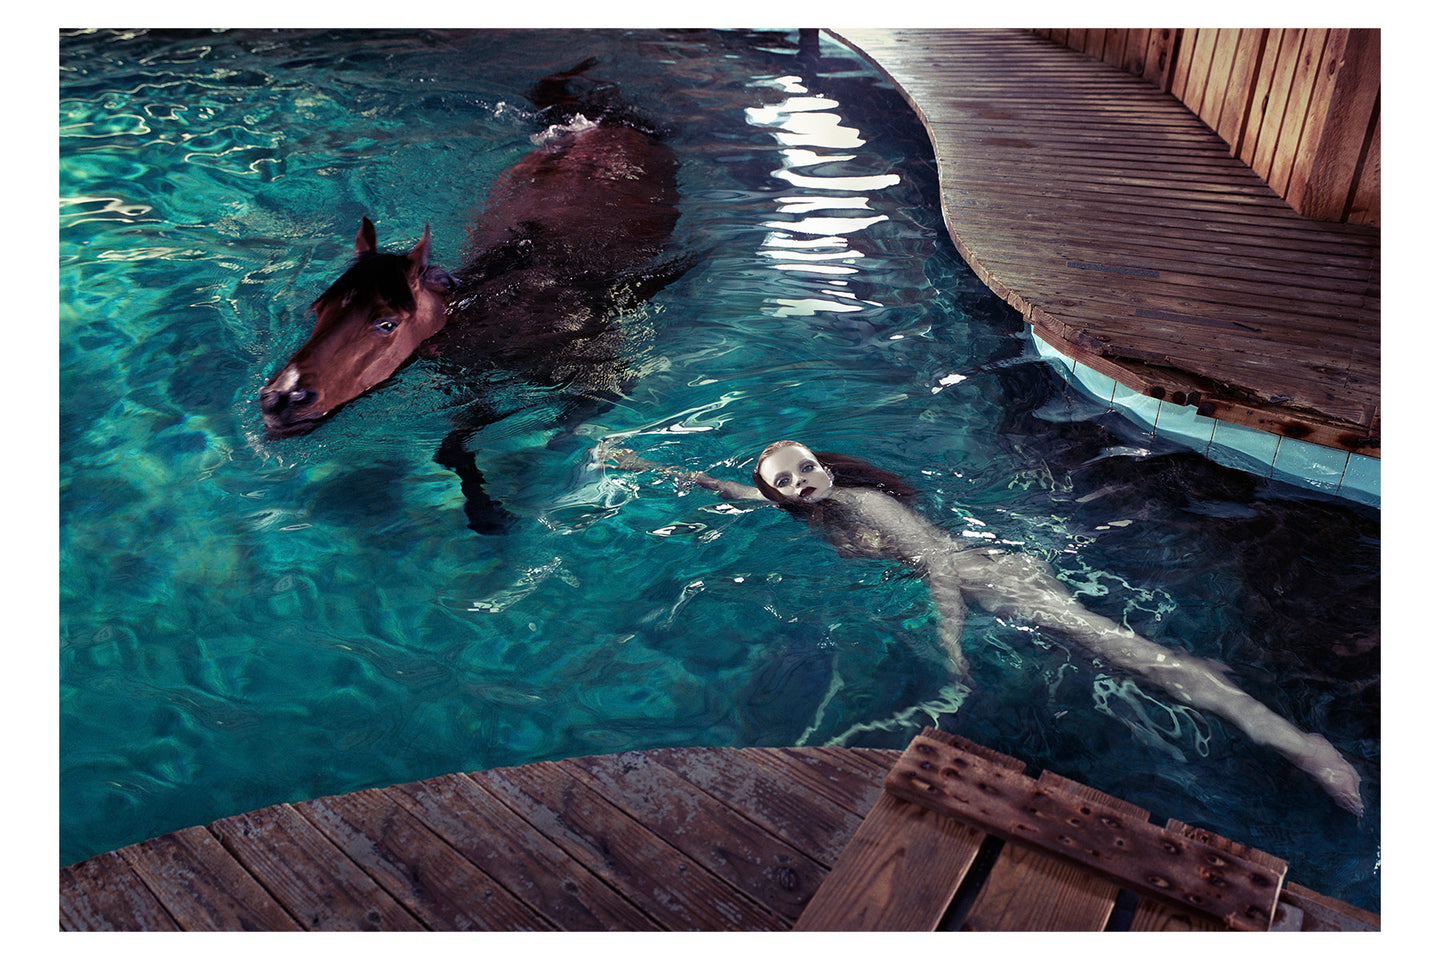 Girl in Pool with Horse, 2005